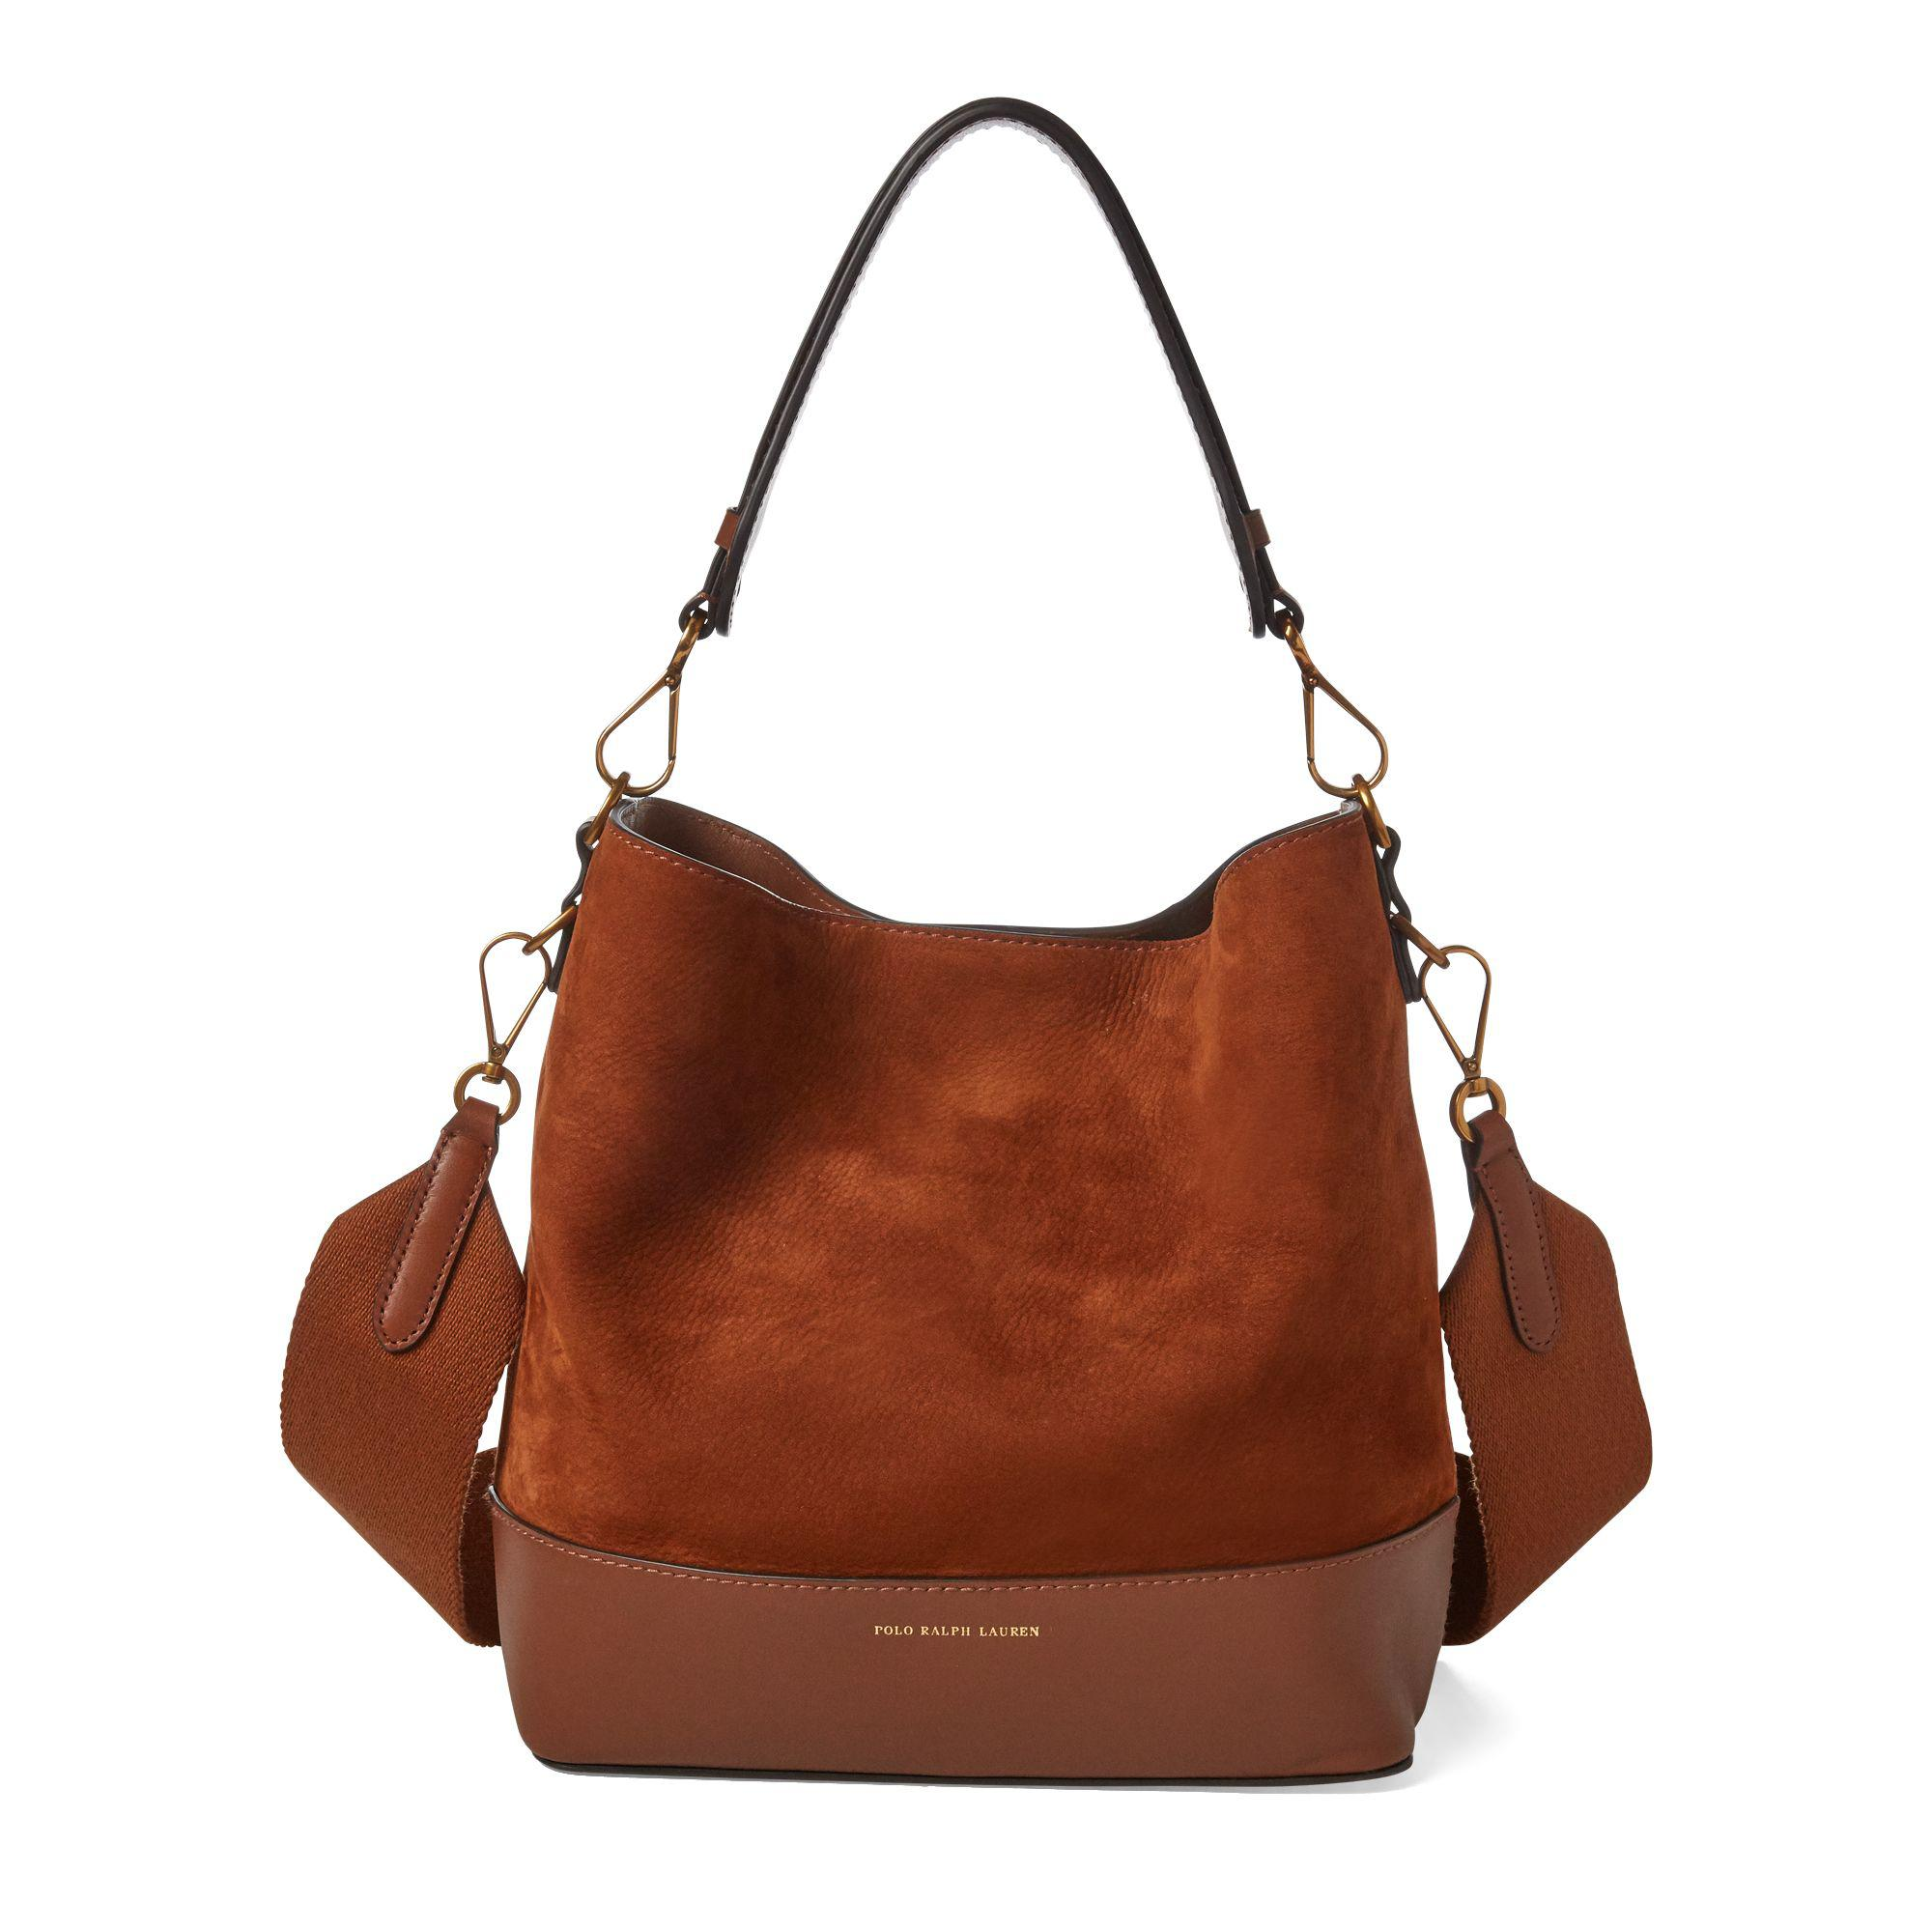 187613351ad Polo Ralph Lauren Small Suede Leather Hobo Bag in Brown - Lyst